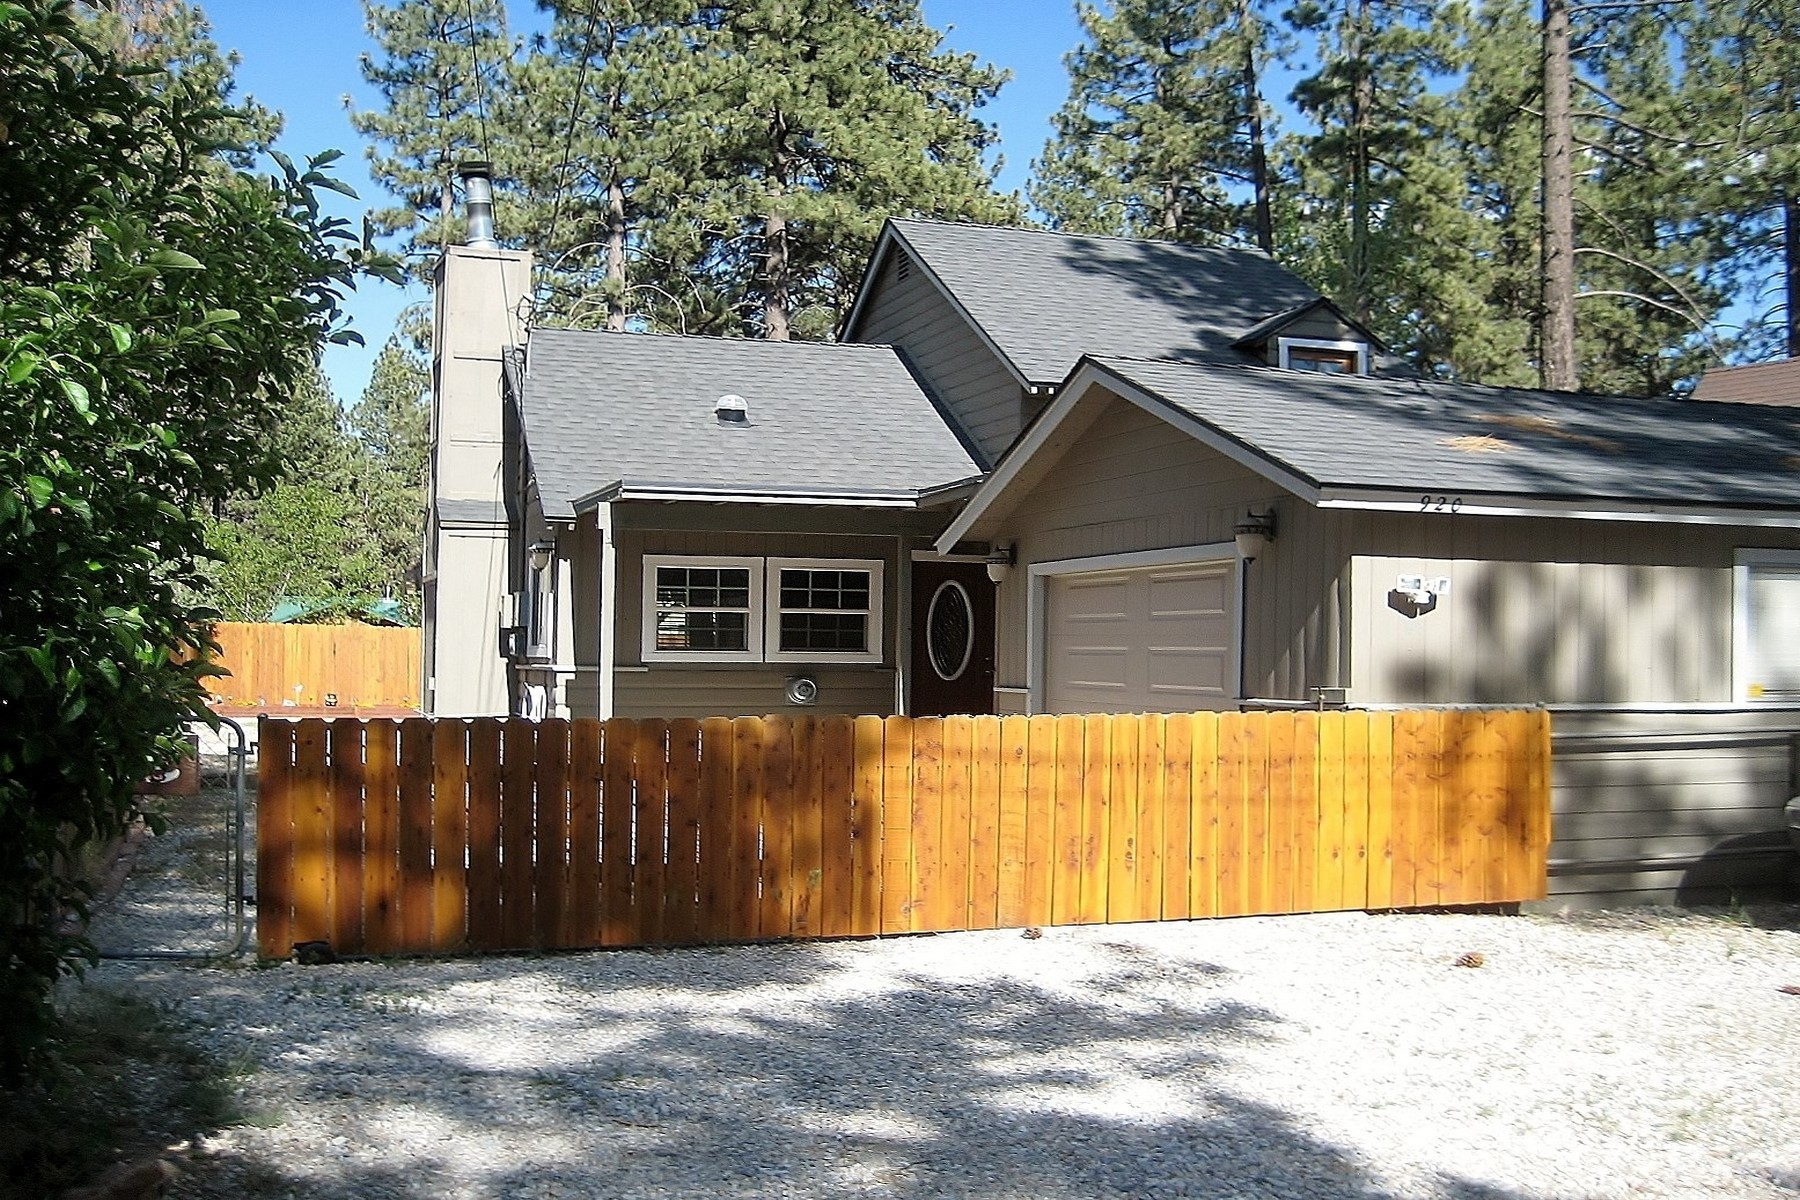 Single Family Home for Sale at 920 Wendy Ave Big Bear City, California 92314 United States